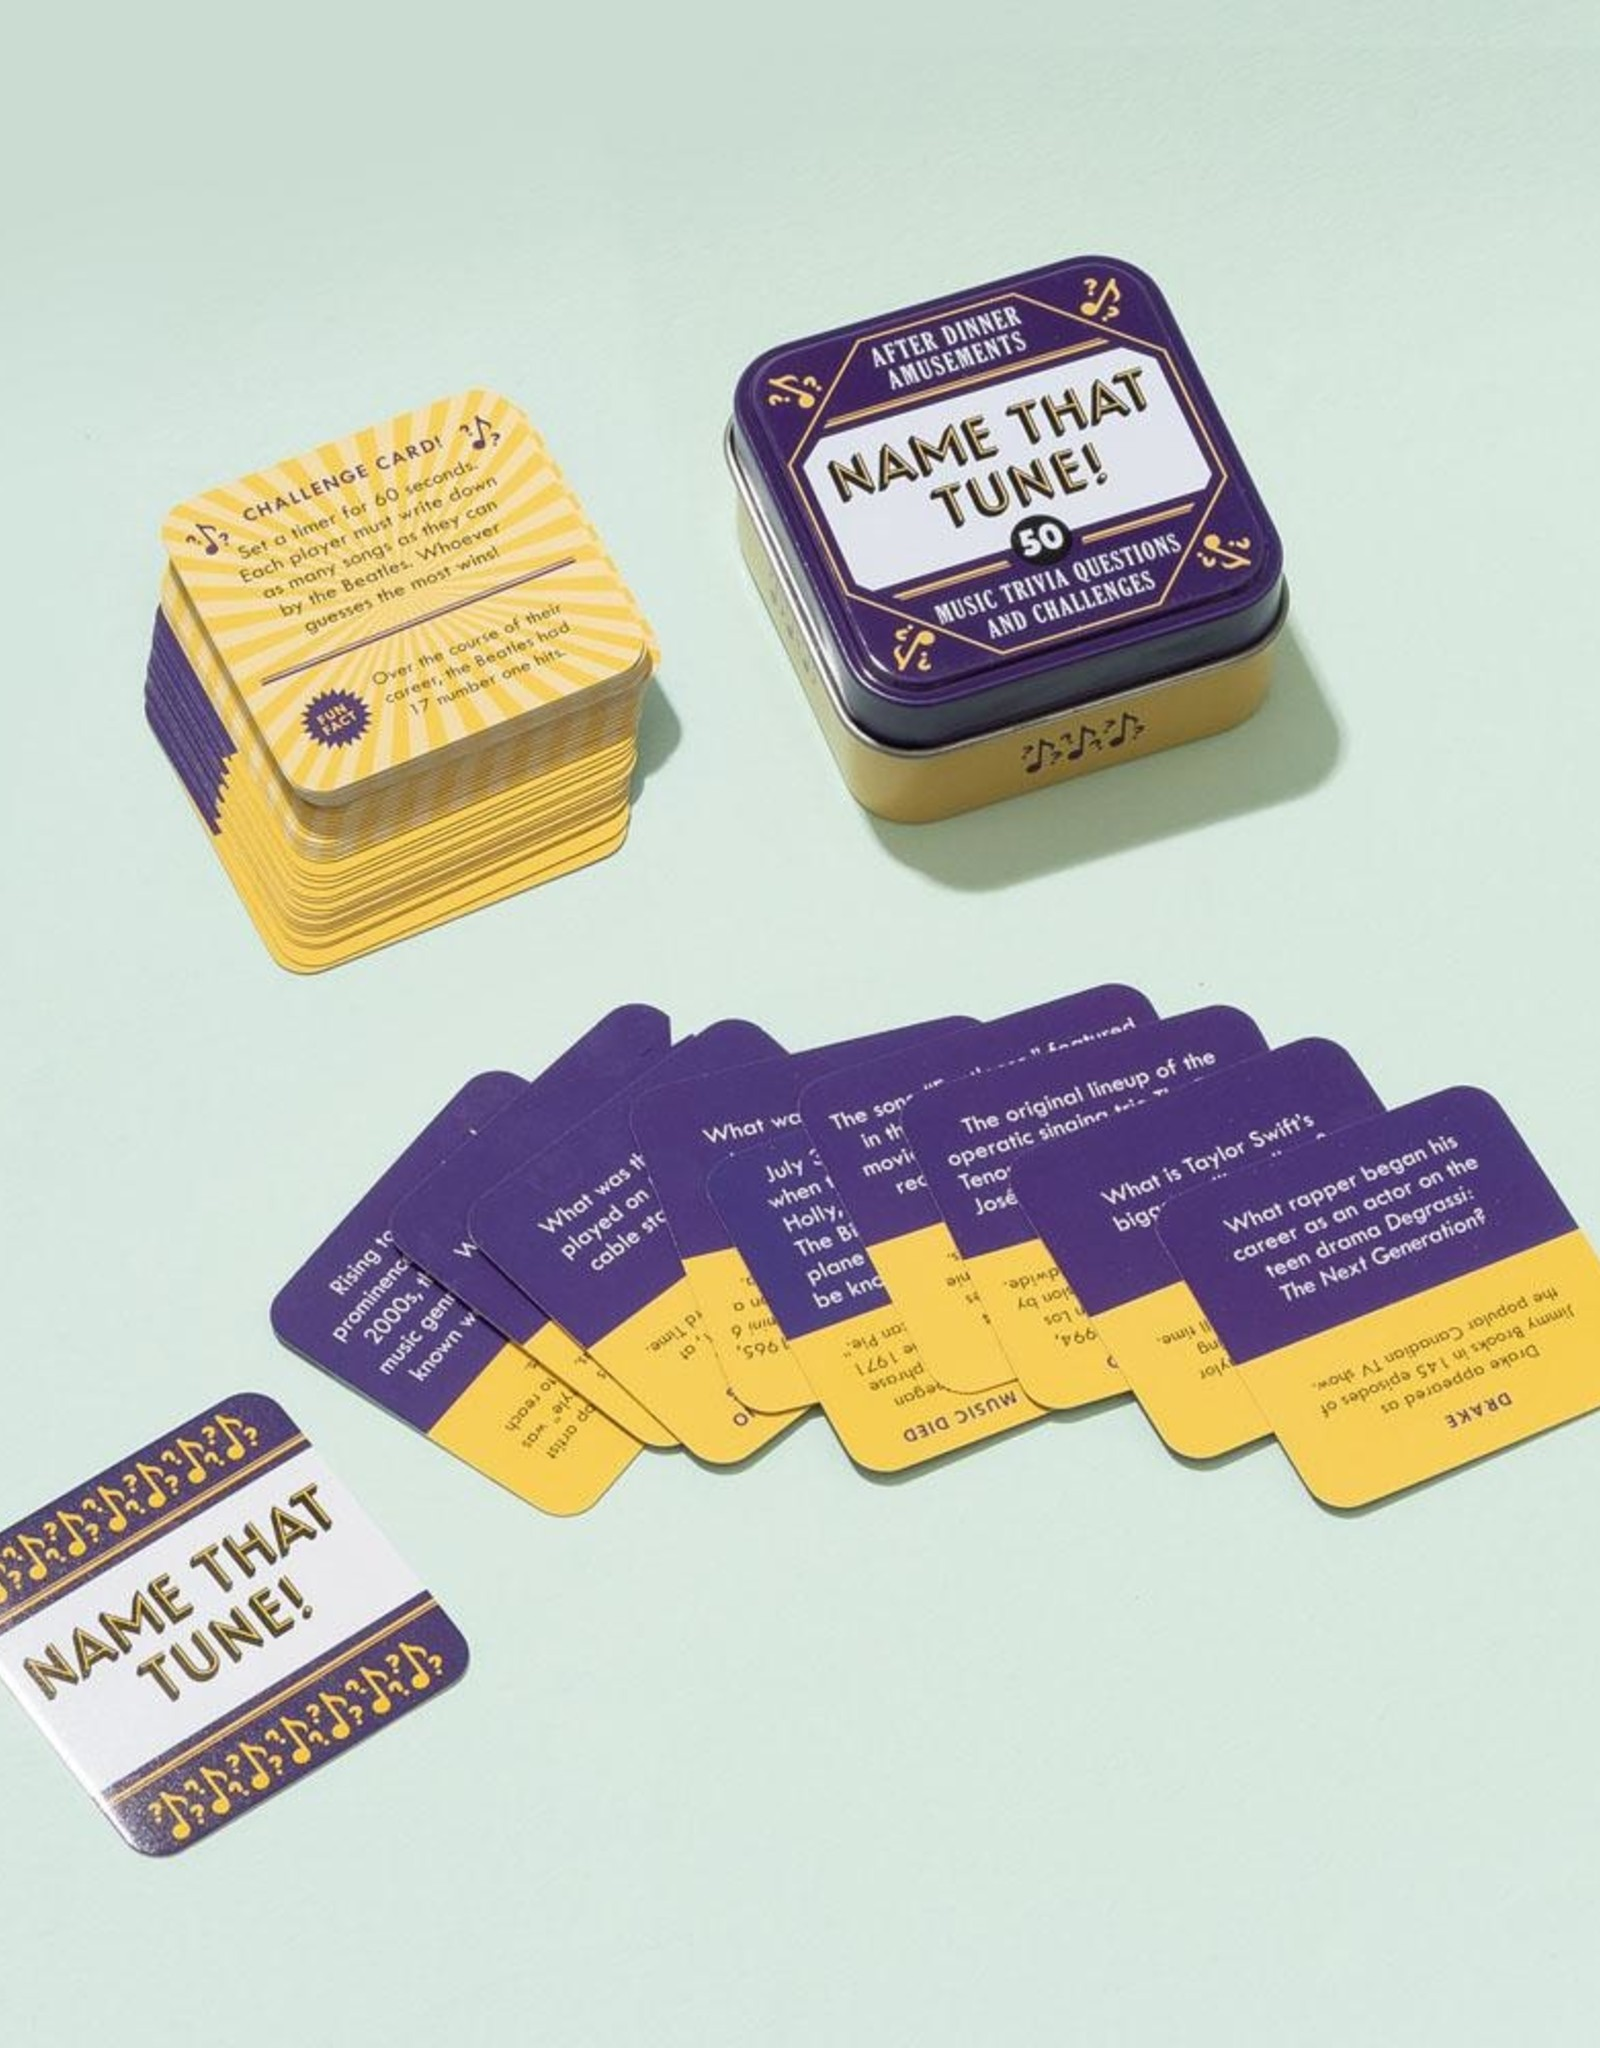 Hachette Book Group Game Tins - Name That Tune!